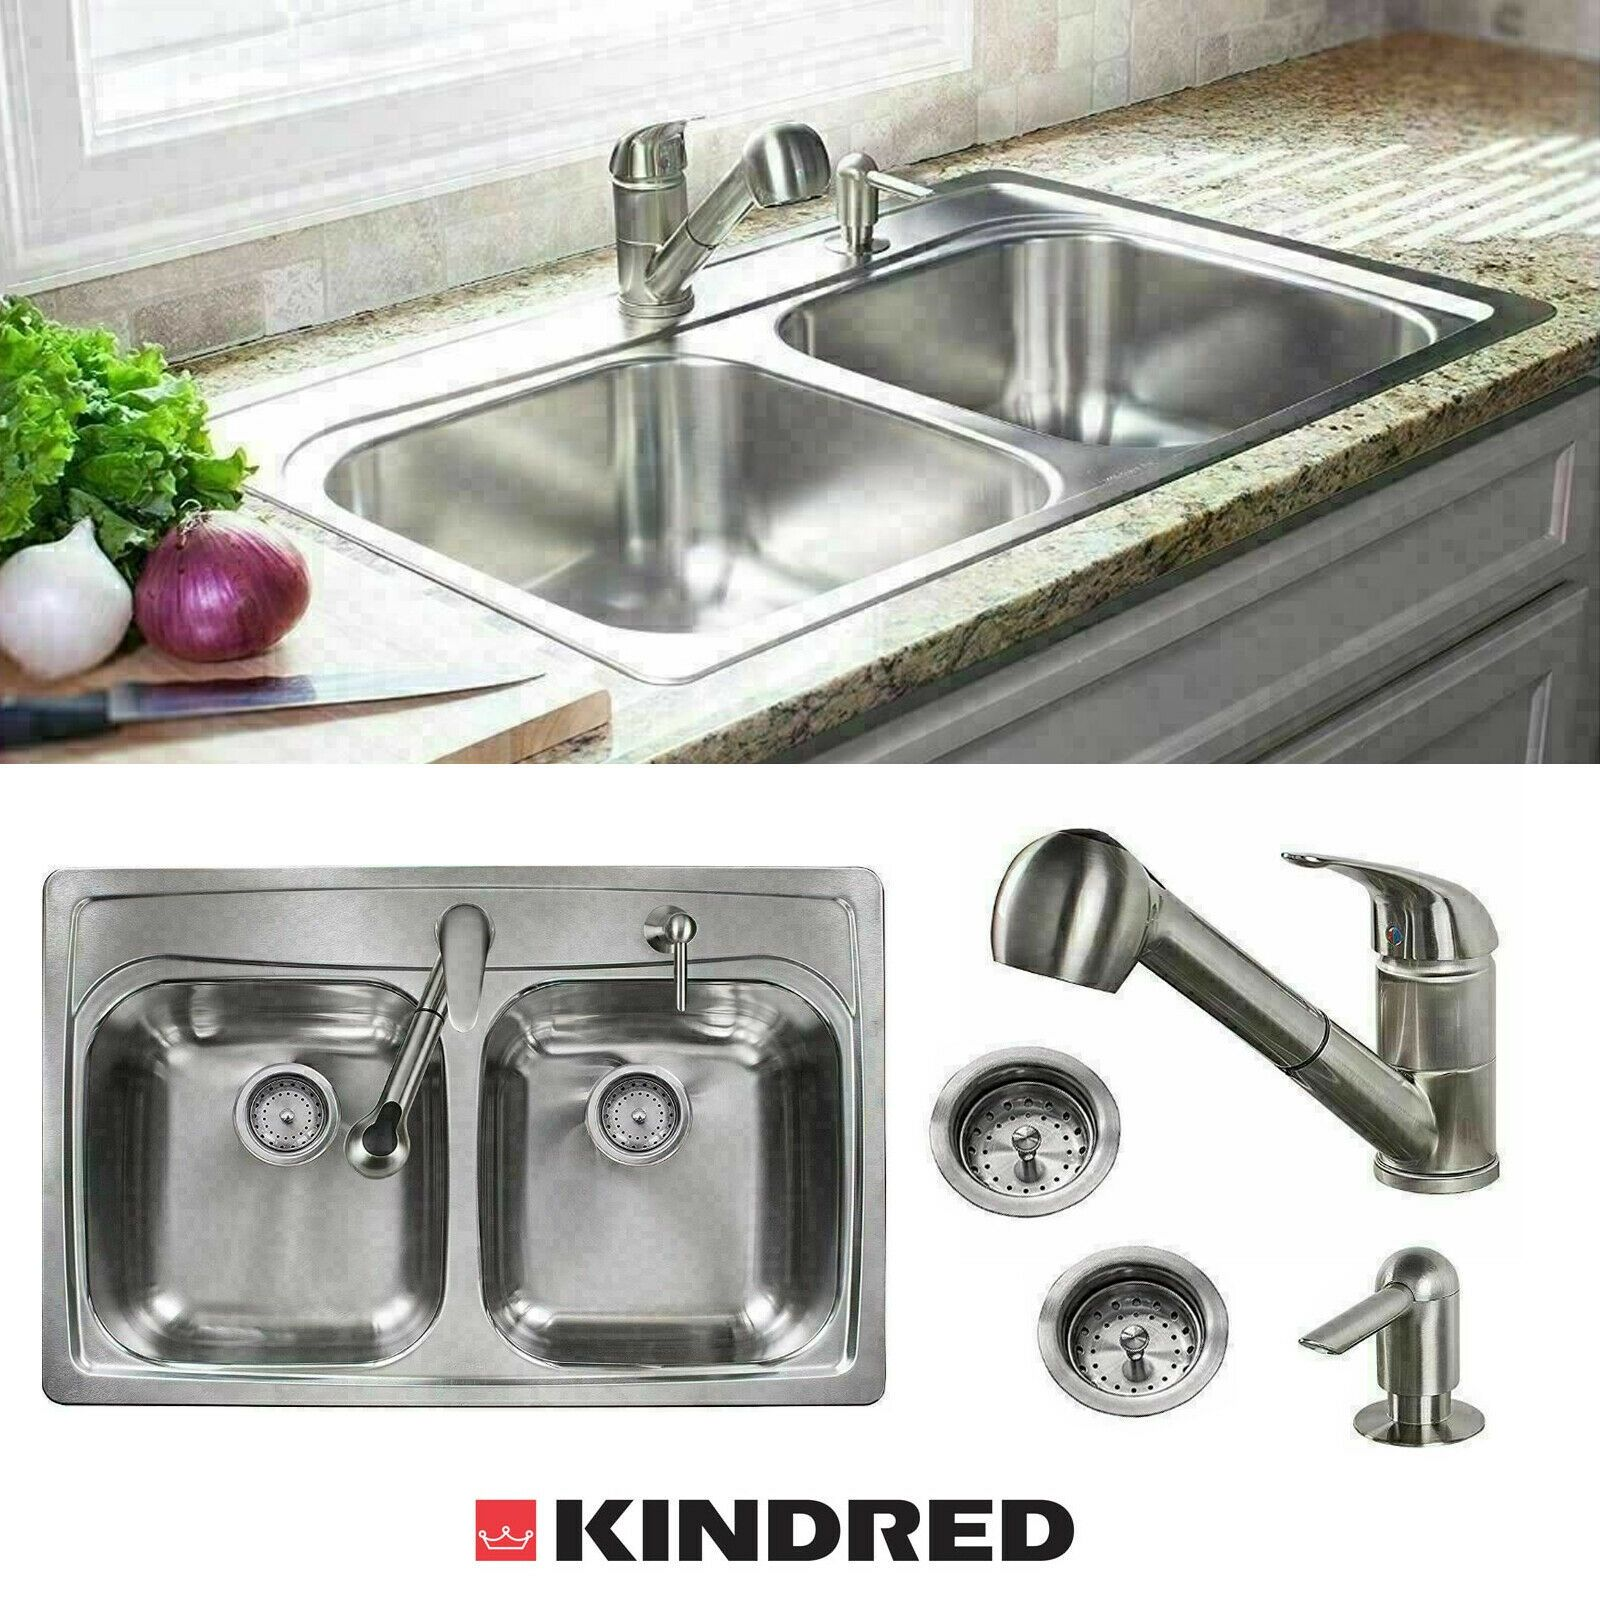 Stainless Steel Kitchen Sink Combo 33 X 22 X 8 Top Mount Double